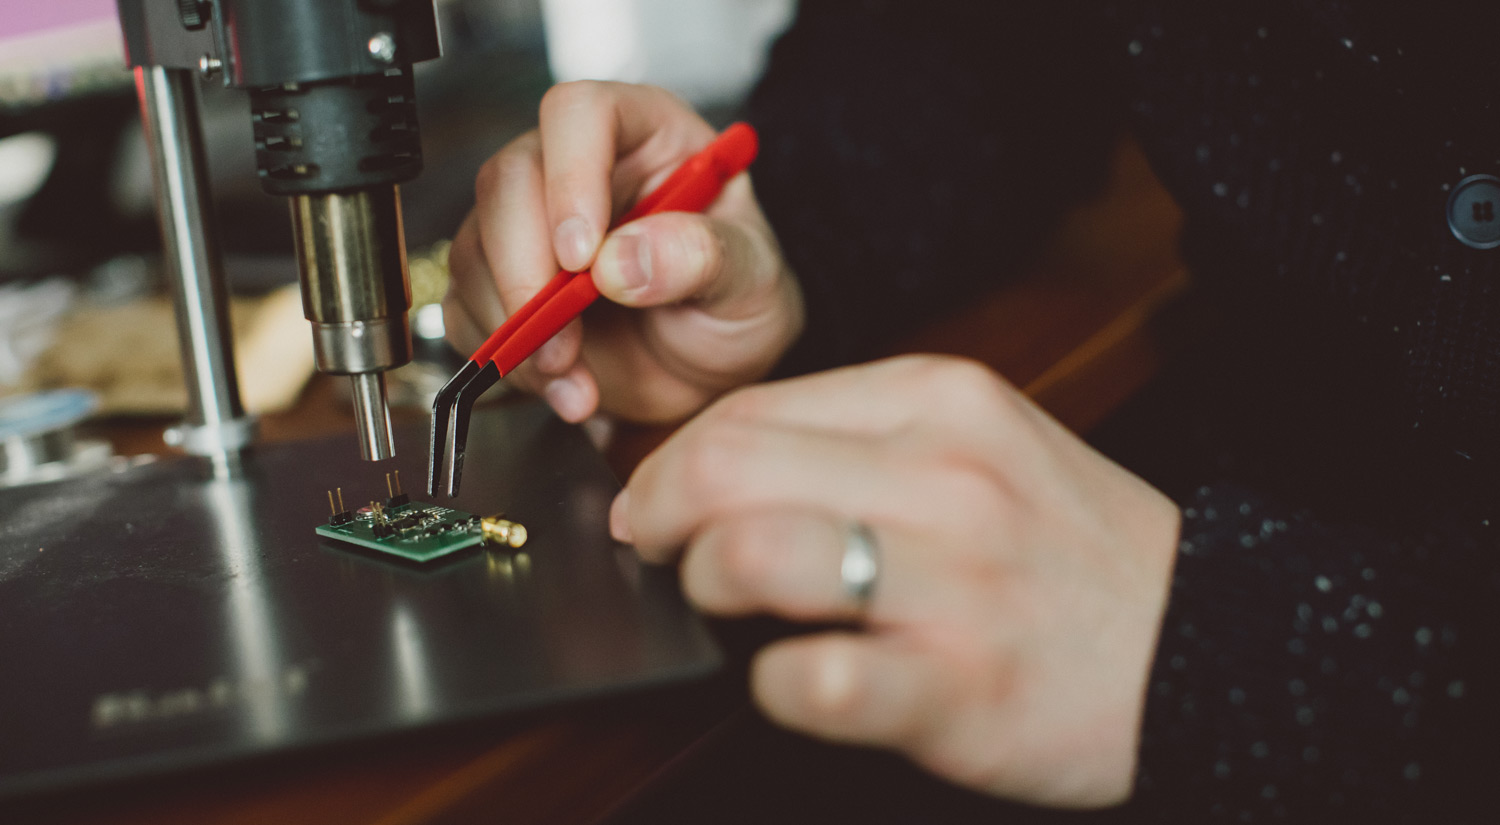 A close-up photo of a student working on a microchip under a microscope